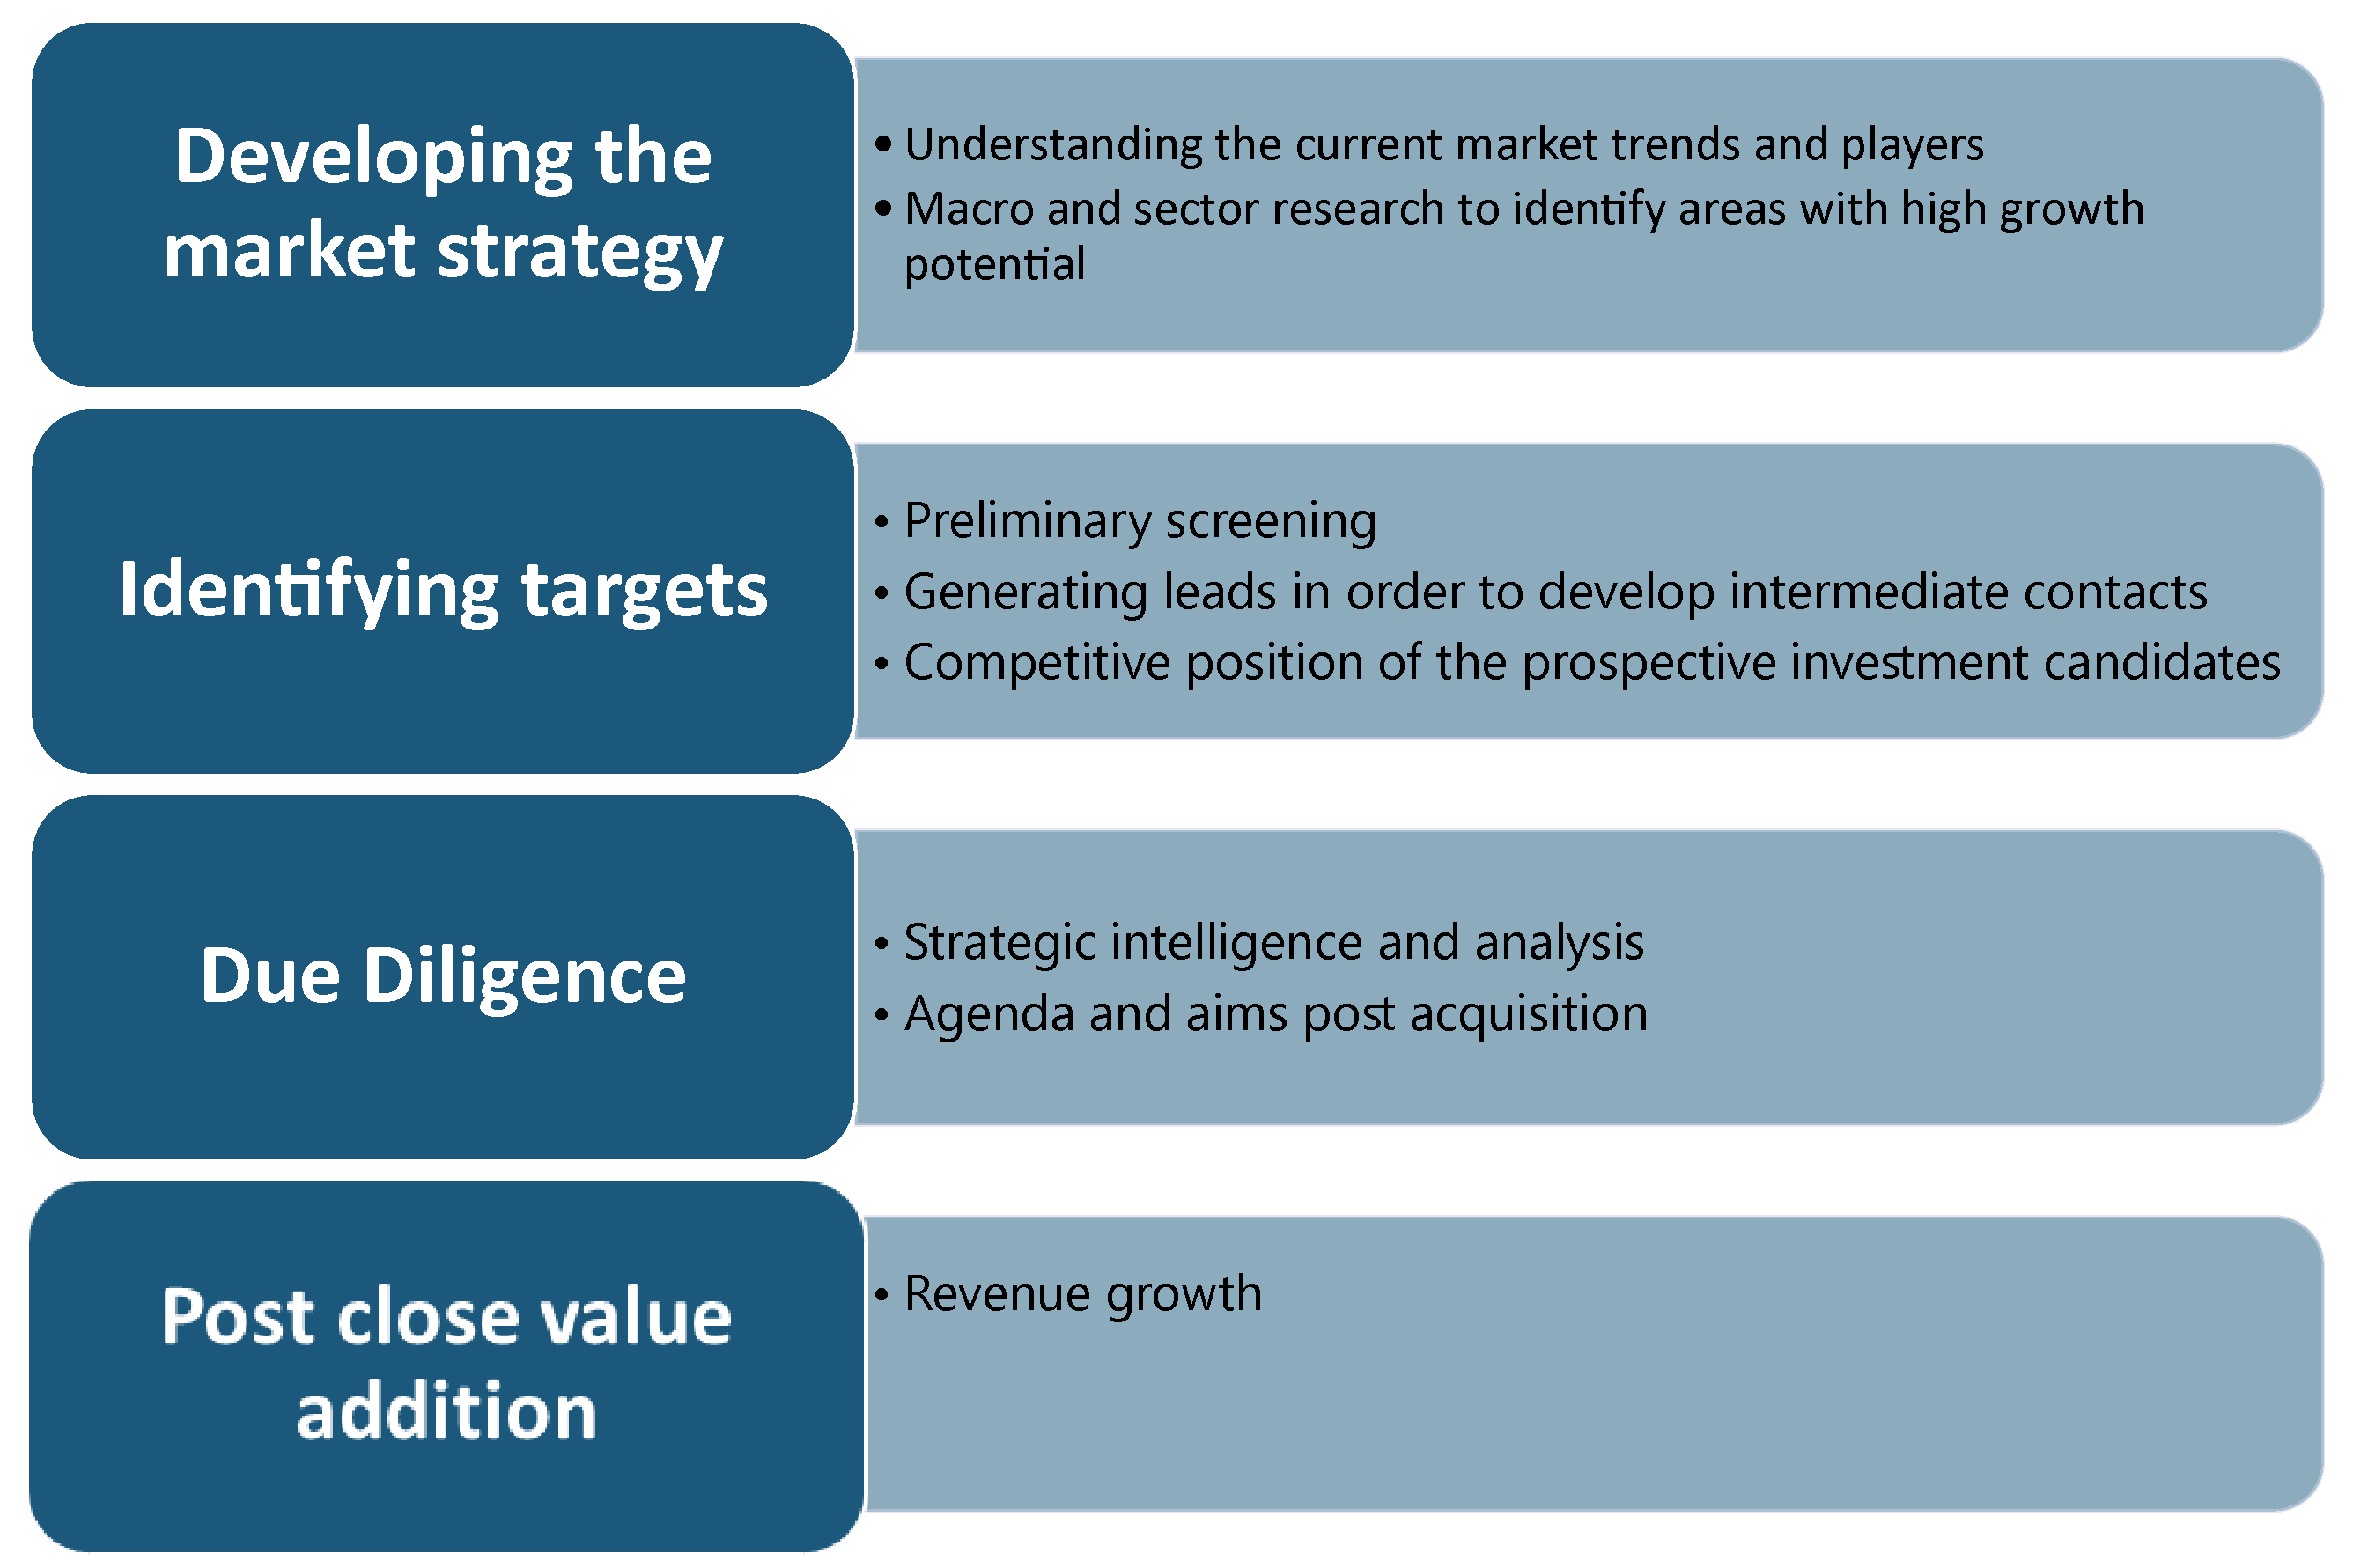 investment firms use market intelligence-01/ Developing the market strategy Identifying targets Due Diligence  Post close value addition